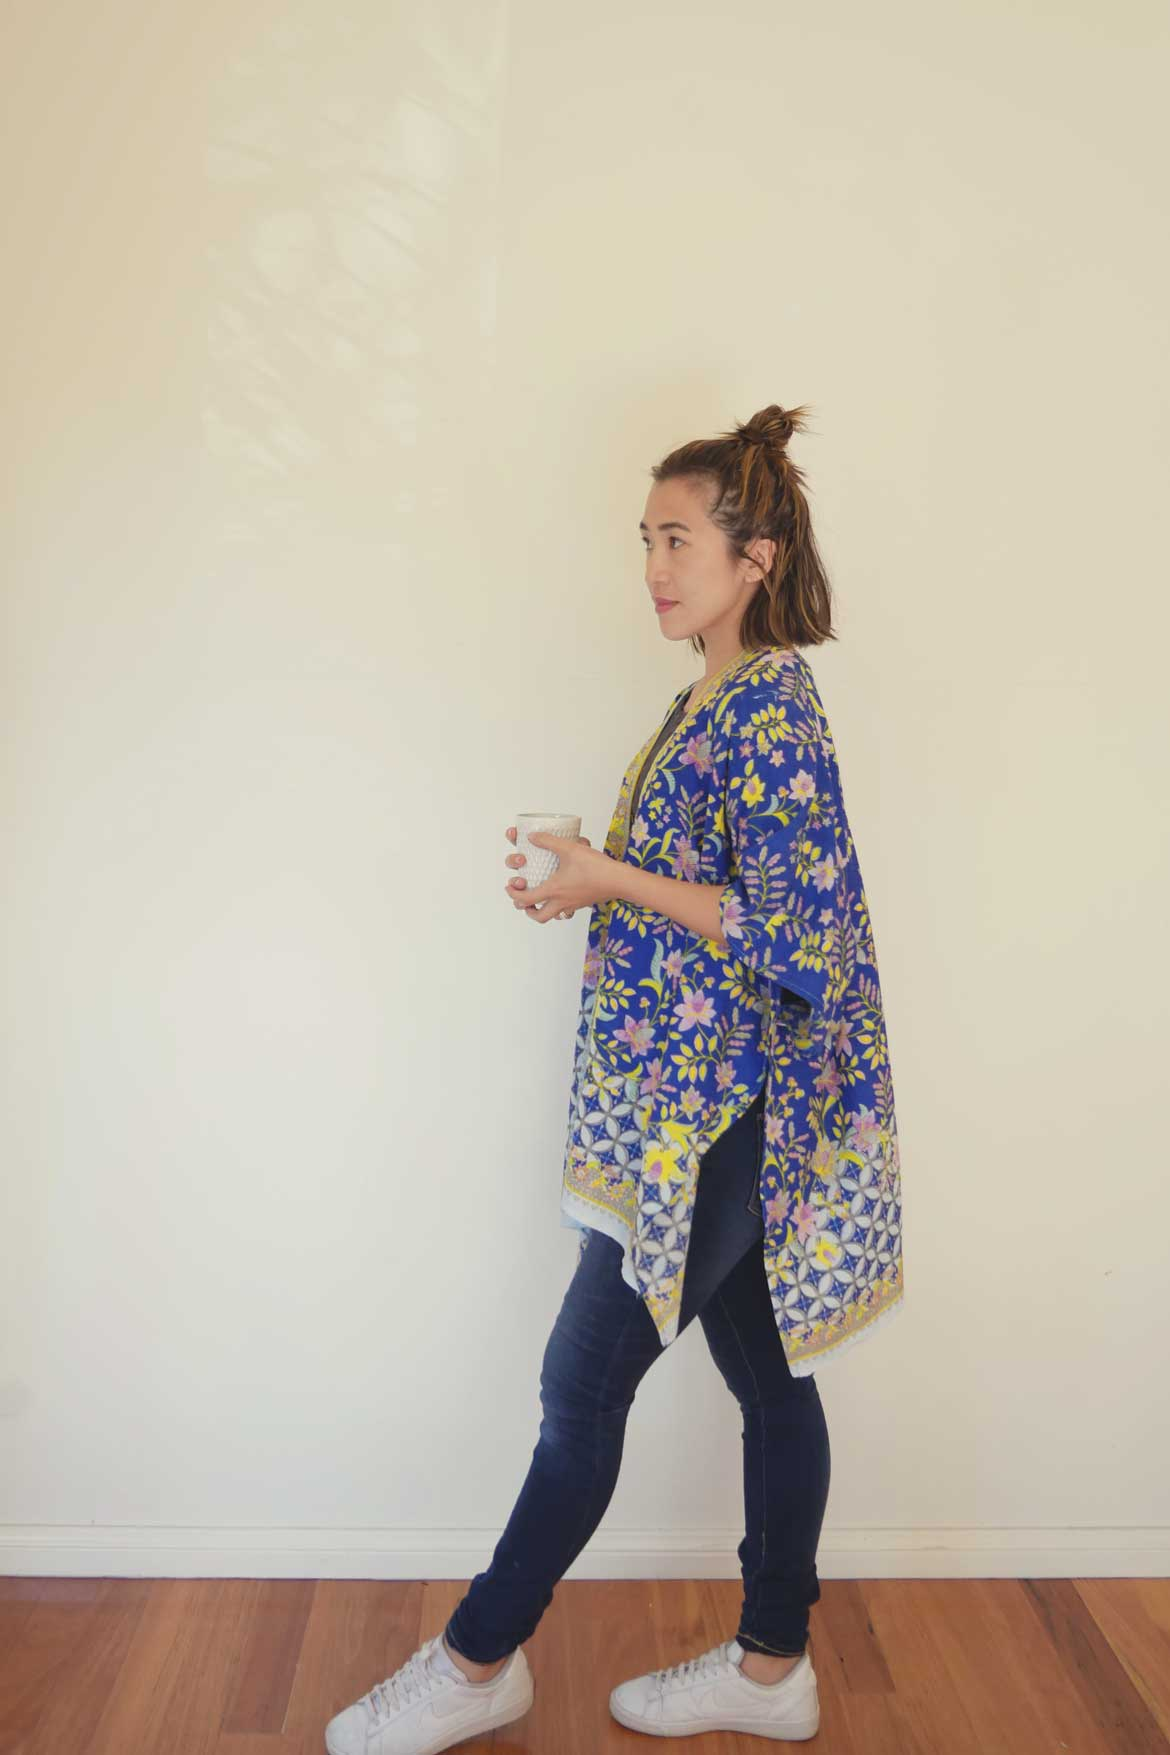 Kimono Sewing Pattern | Sew a kimono jacket with this easy sewing pattern. Also includes kimono outfit ideas. Kimono outfit summer, kimono outfit jeans and kimono outfit casual. More pics at www.sewinlove.com.au